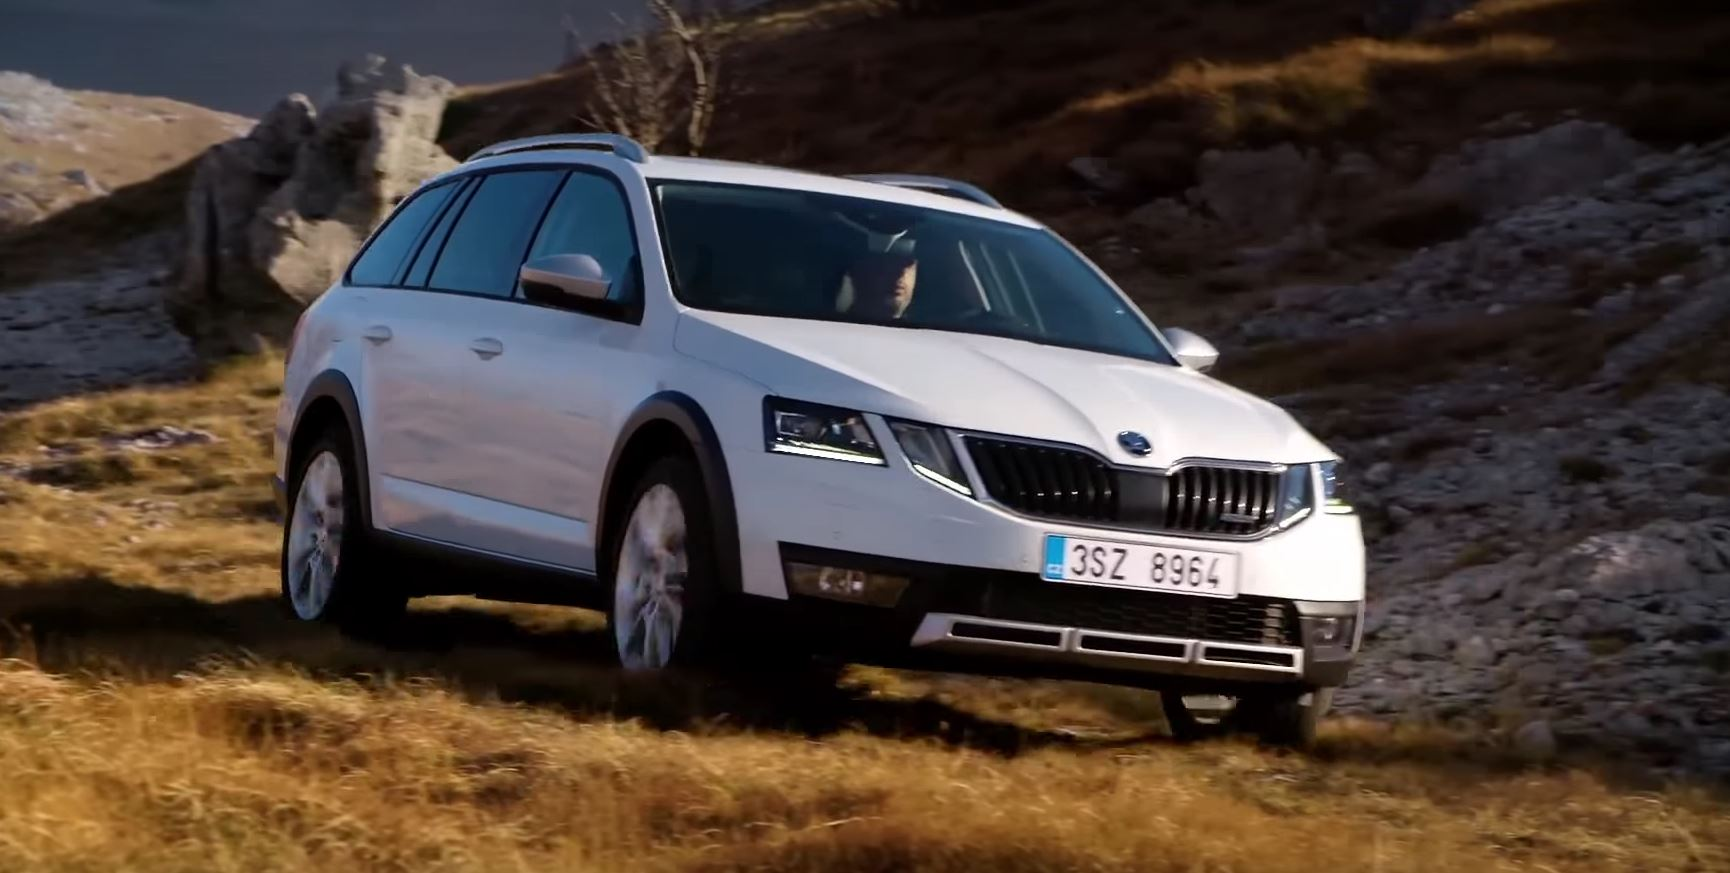 skoda releases 2017 octavia scout off road driving footage autoevolution. Black Bedroom Furniture Sets. Home Design Ideas